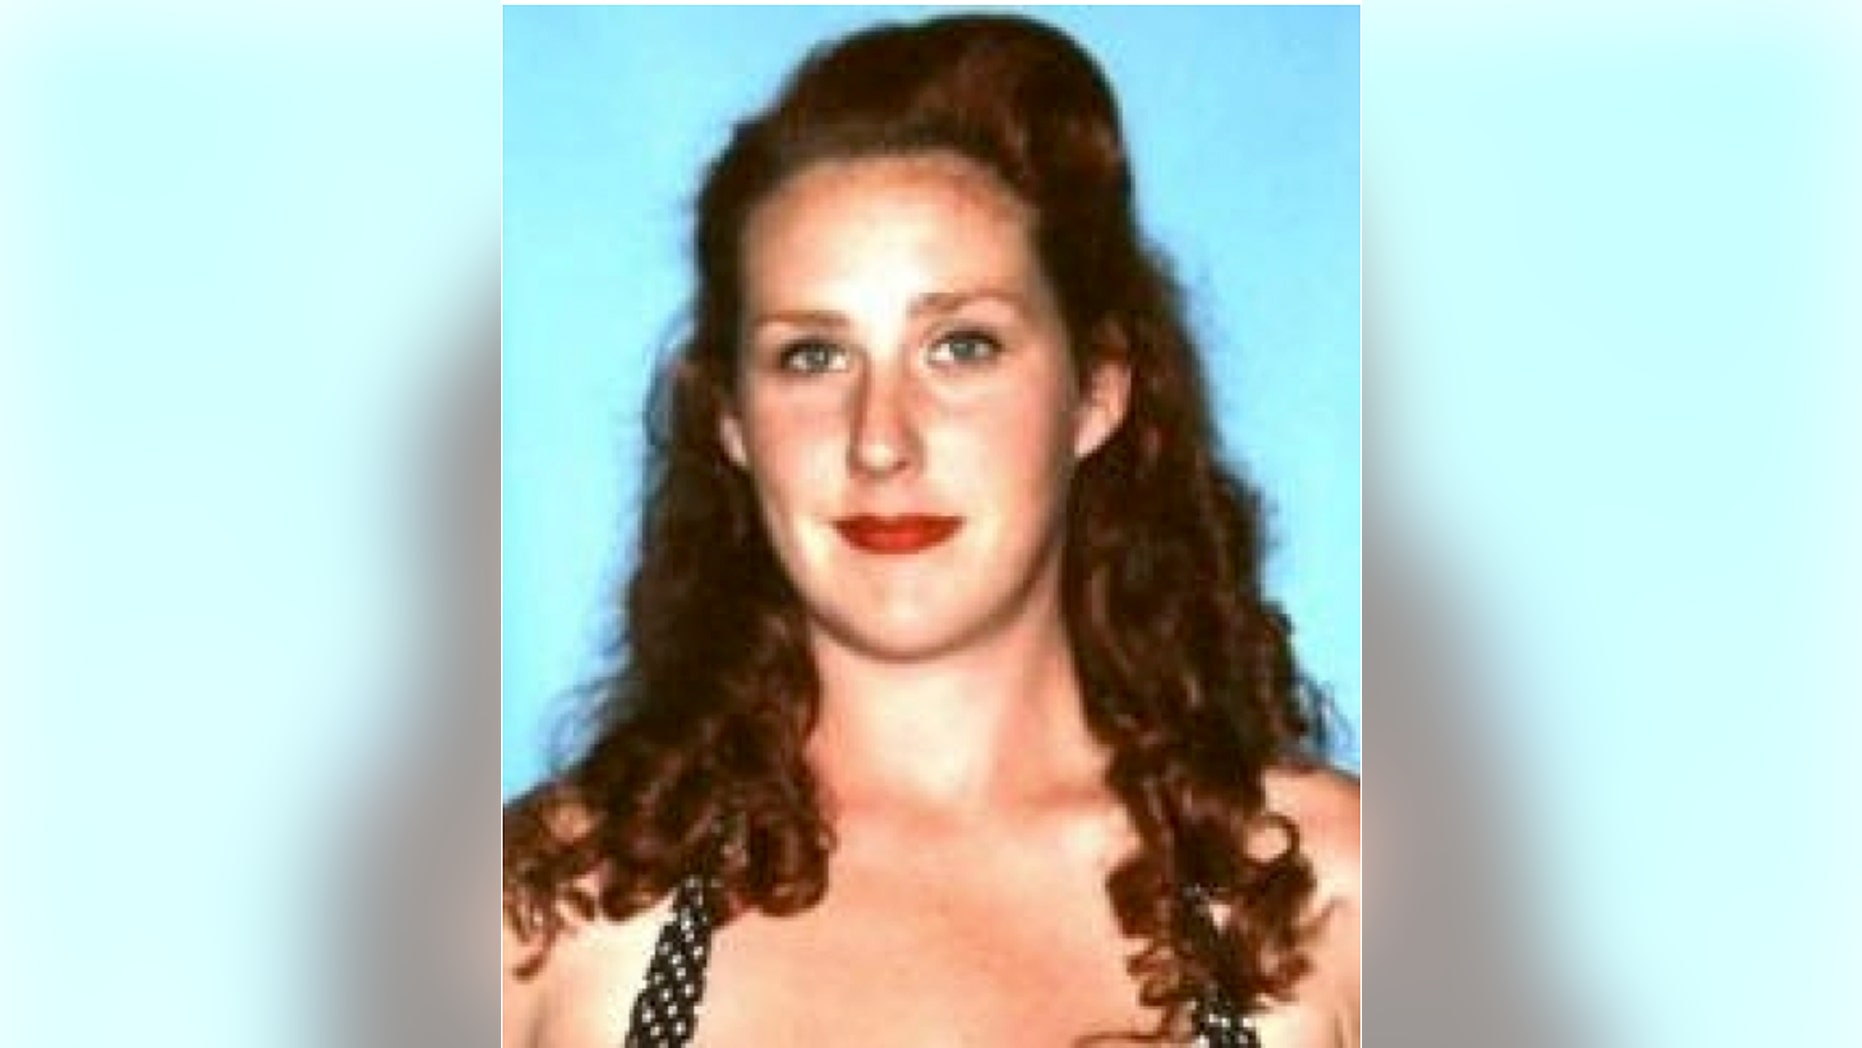 This undated photo released by the Maui Police Department shows Carly Scott.